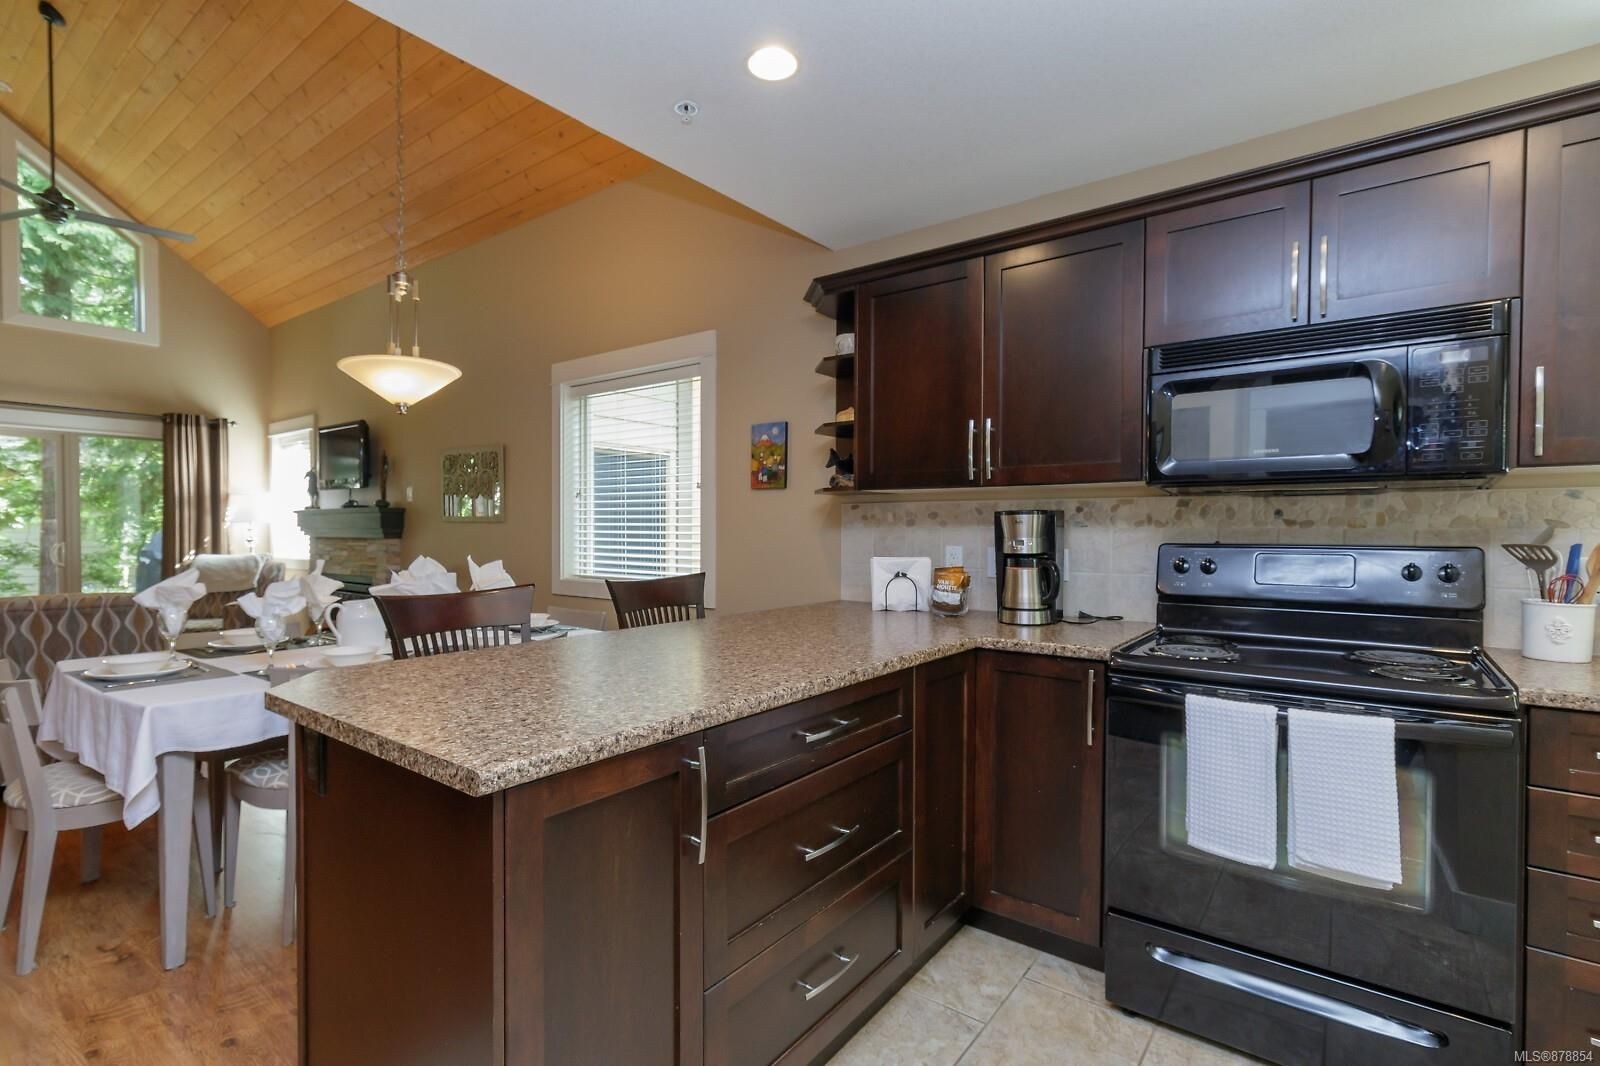 Photo 18: Photos: 223 1130 Resort Dr in : PQ Parksville Row/Townhouse for sale (Parksville/Qualicum)  : MLS®# 878854